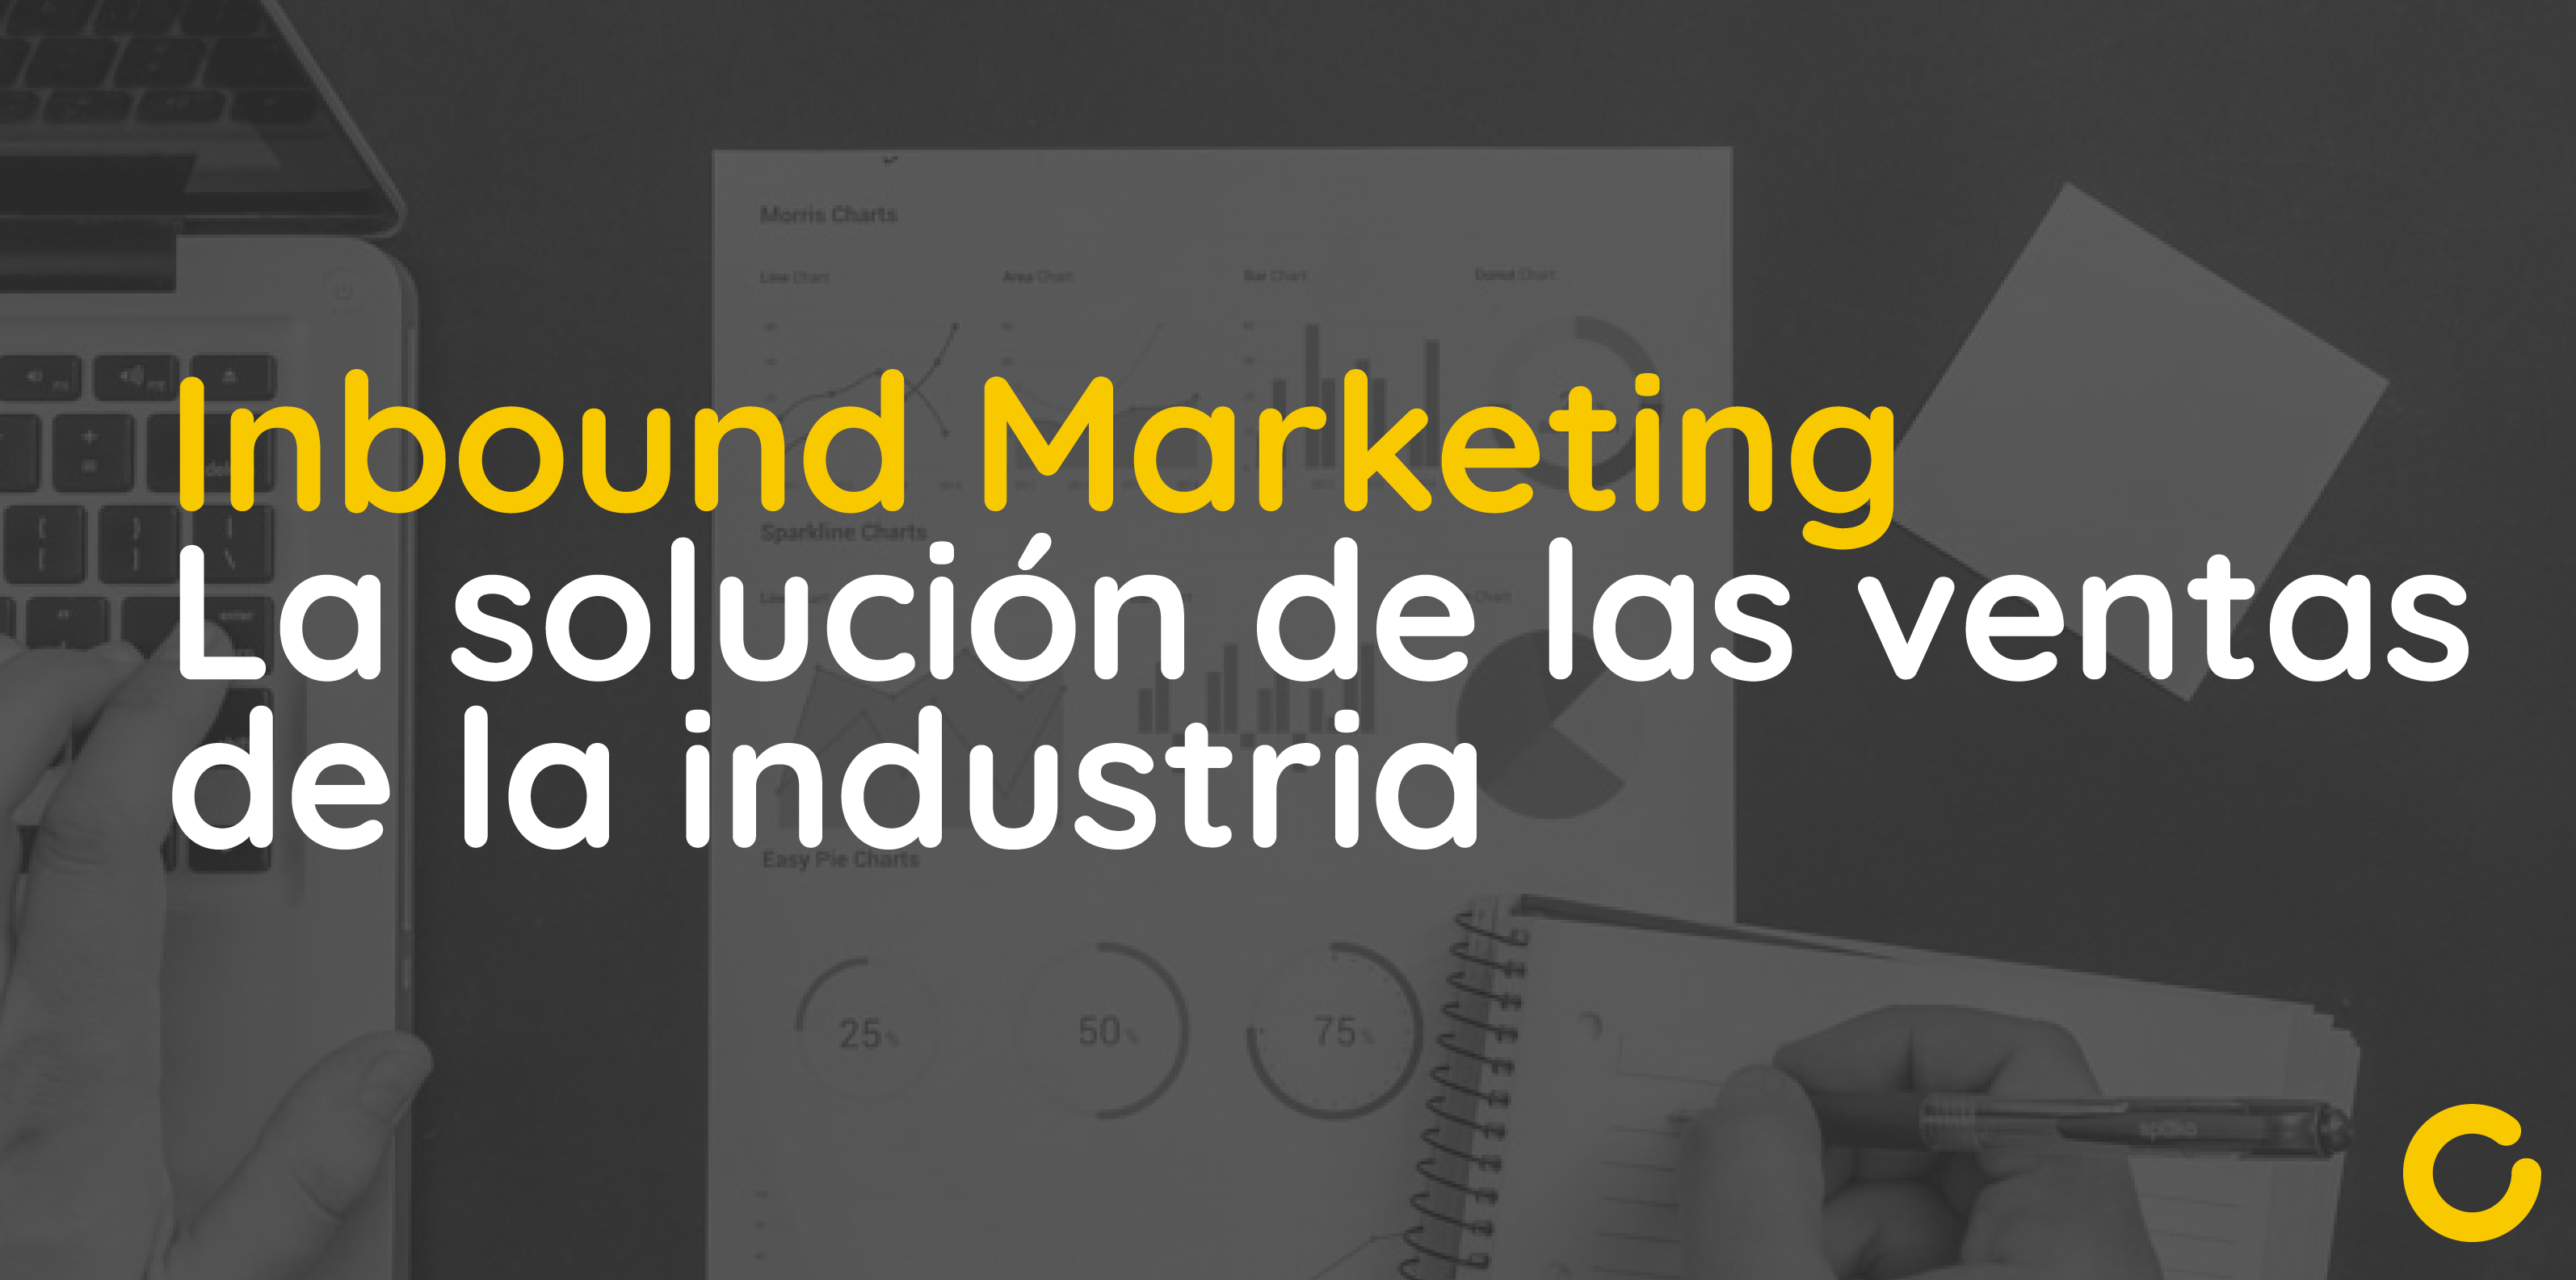 Inbound Marketing la silucion de las ventas de la industria-01